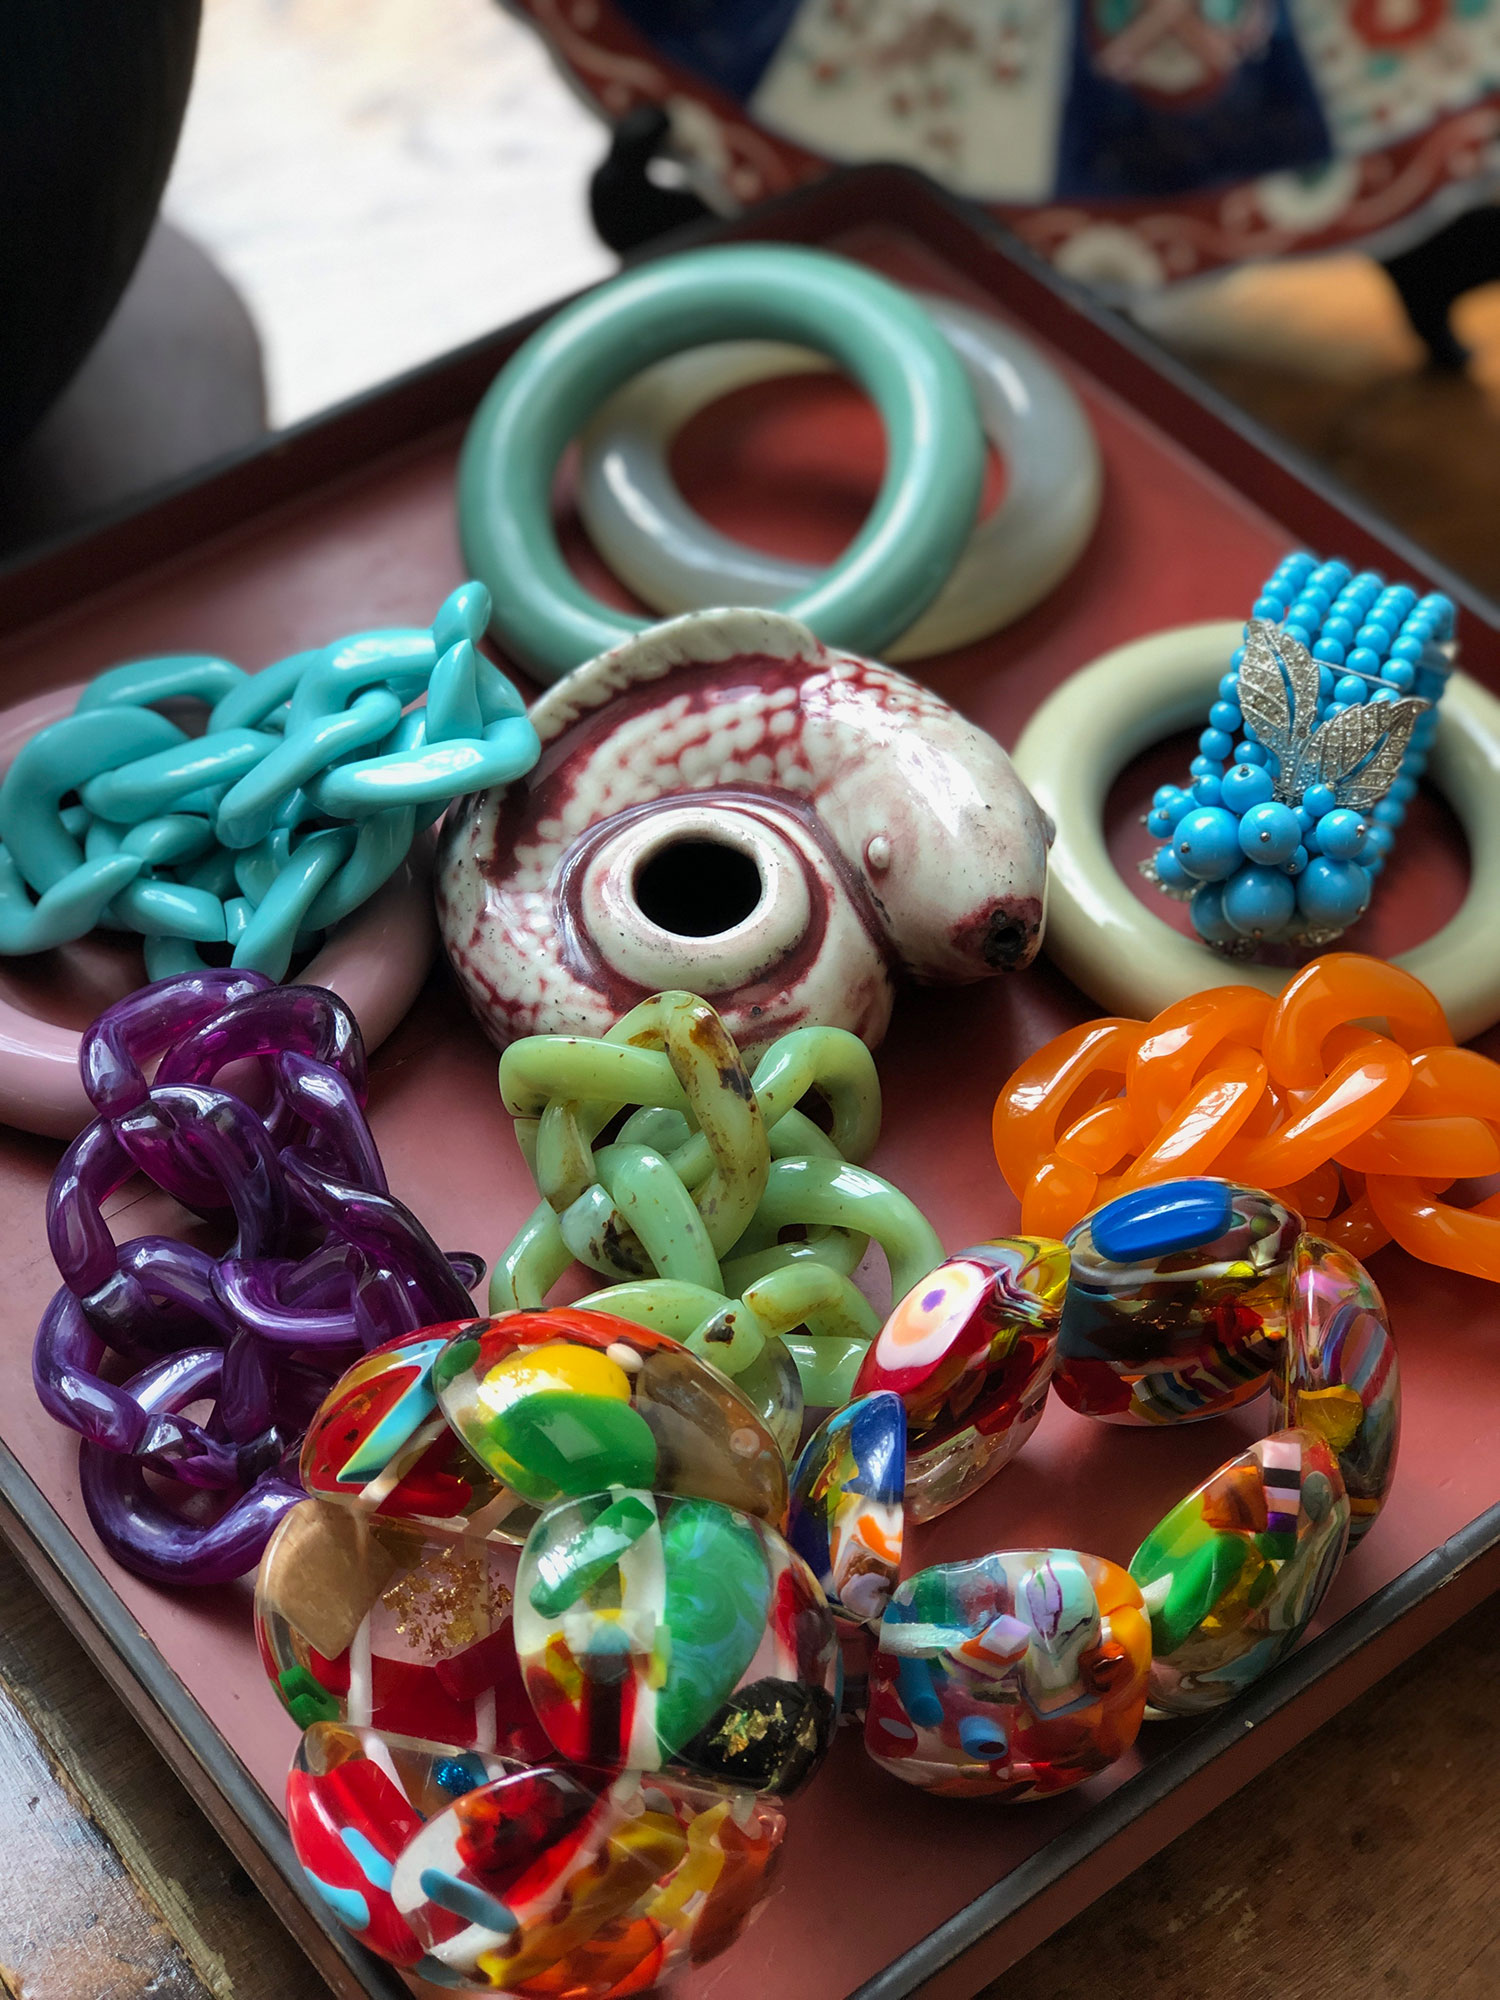 Here are some of my Angela Caputi bracelets plus a few Sobrals and a Miriam Haskel.